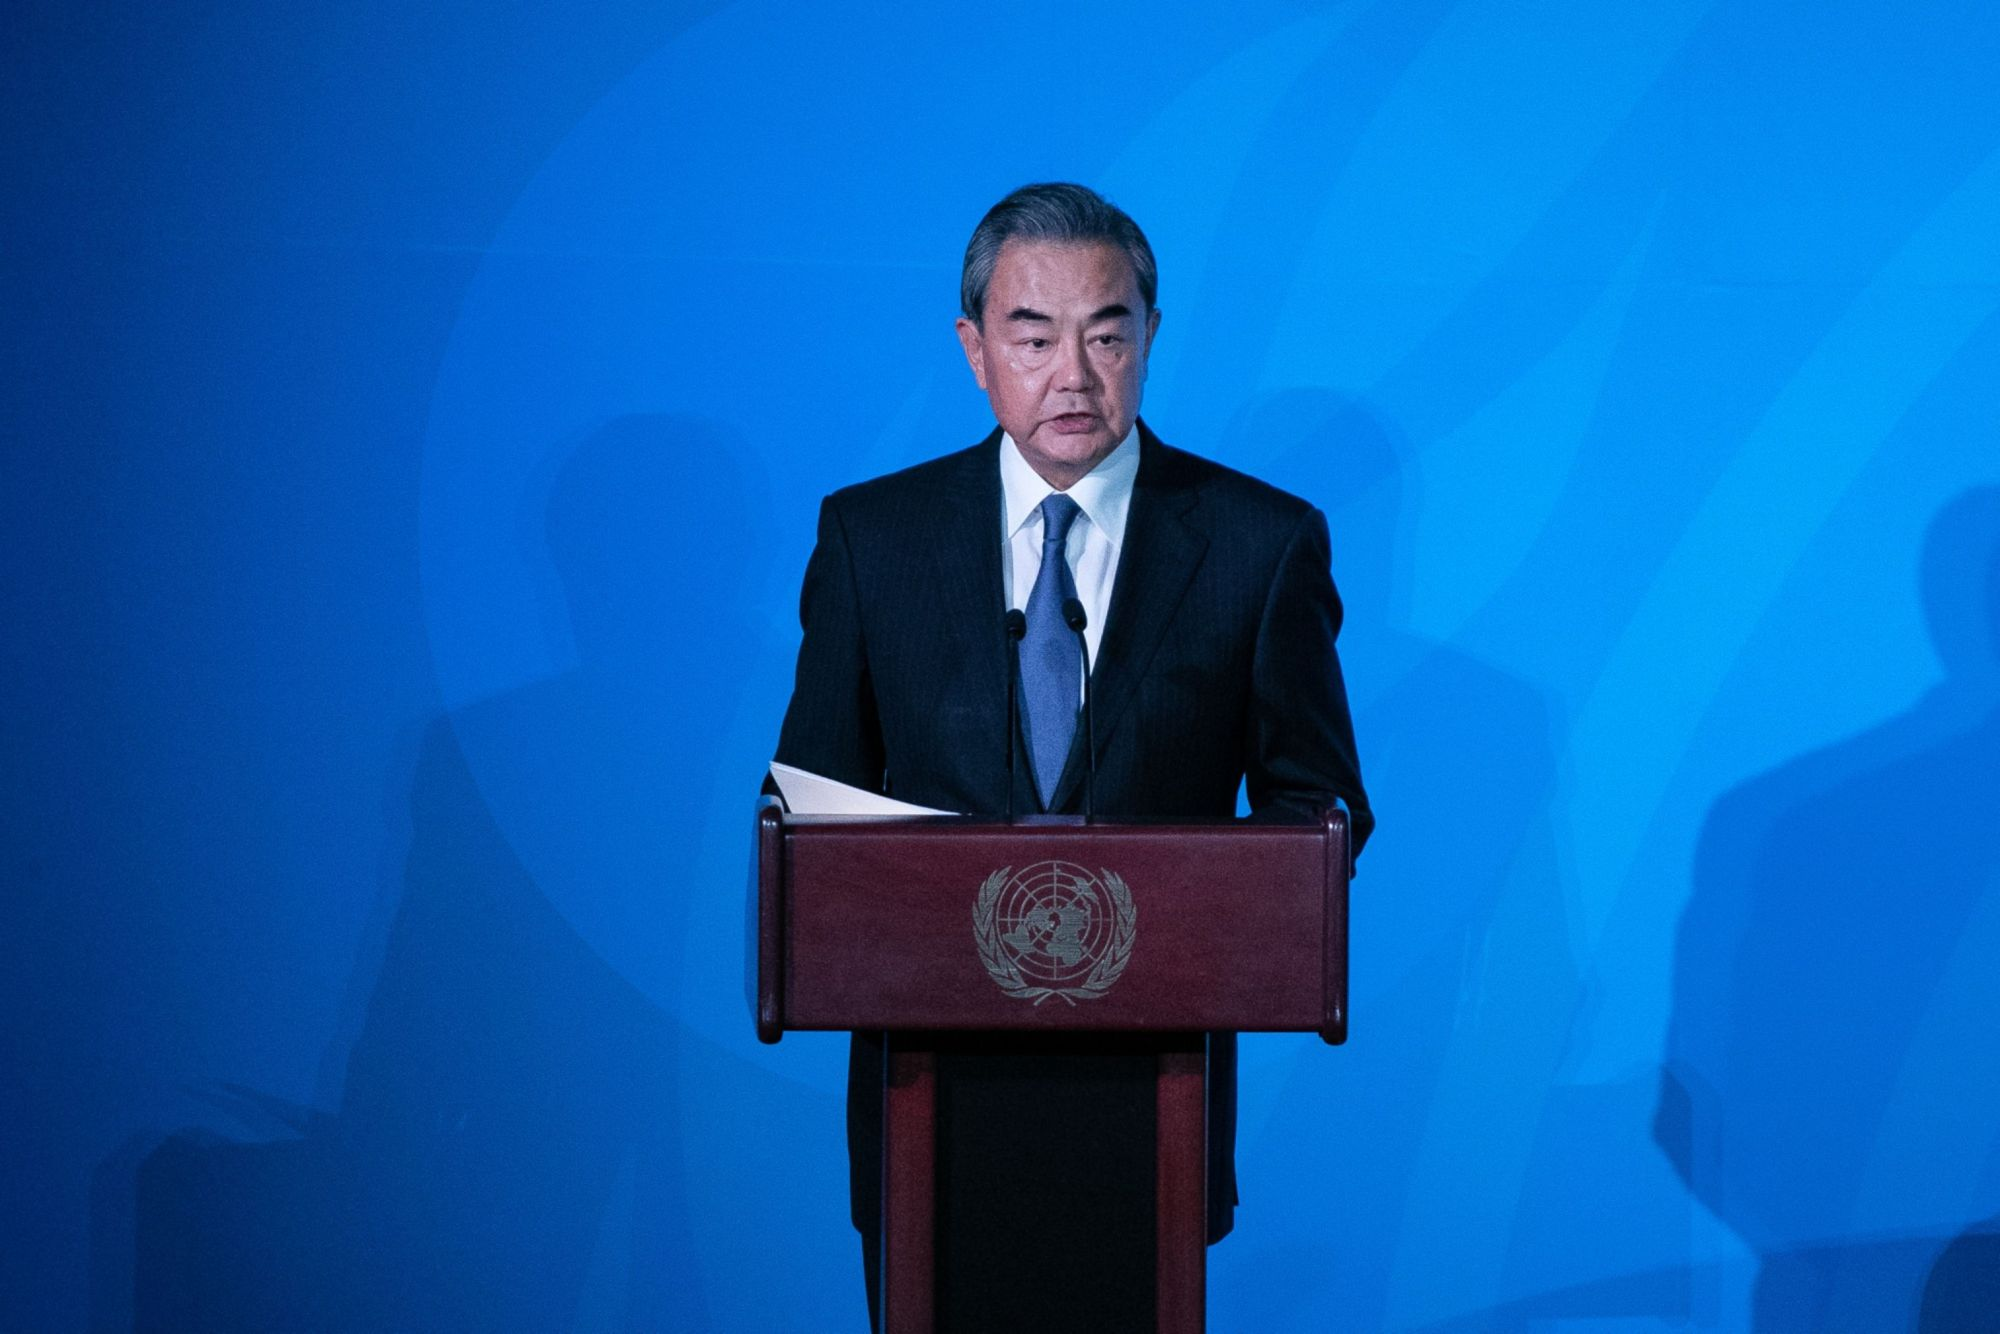 Wang Yi, China's foreign minister, speaks during the United Nations Climate Action Summit in New York in September. | BLOOMBERG